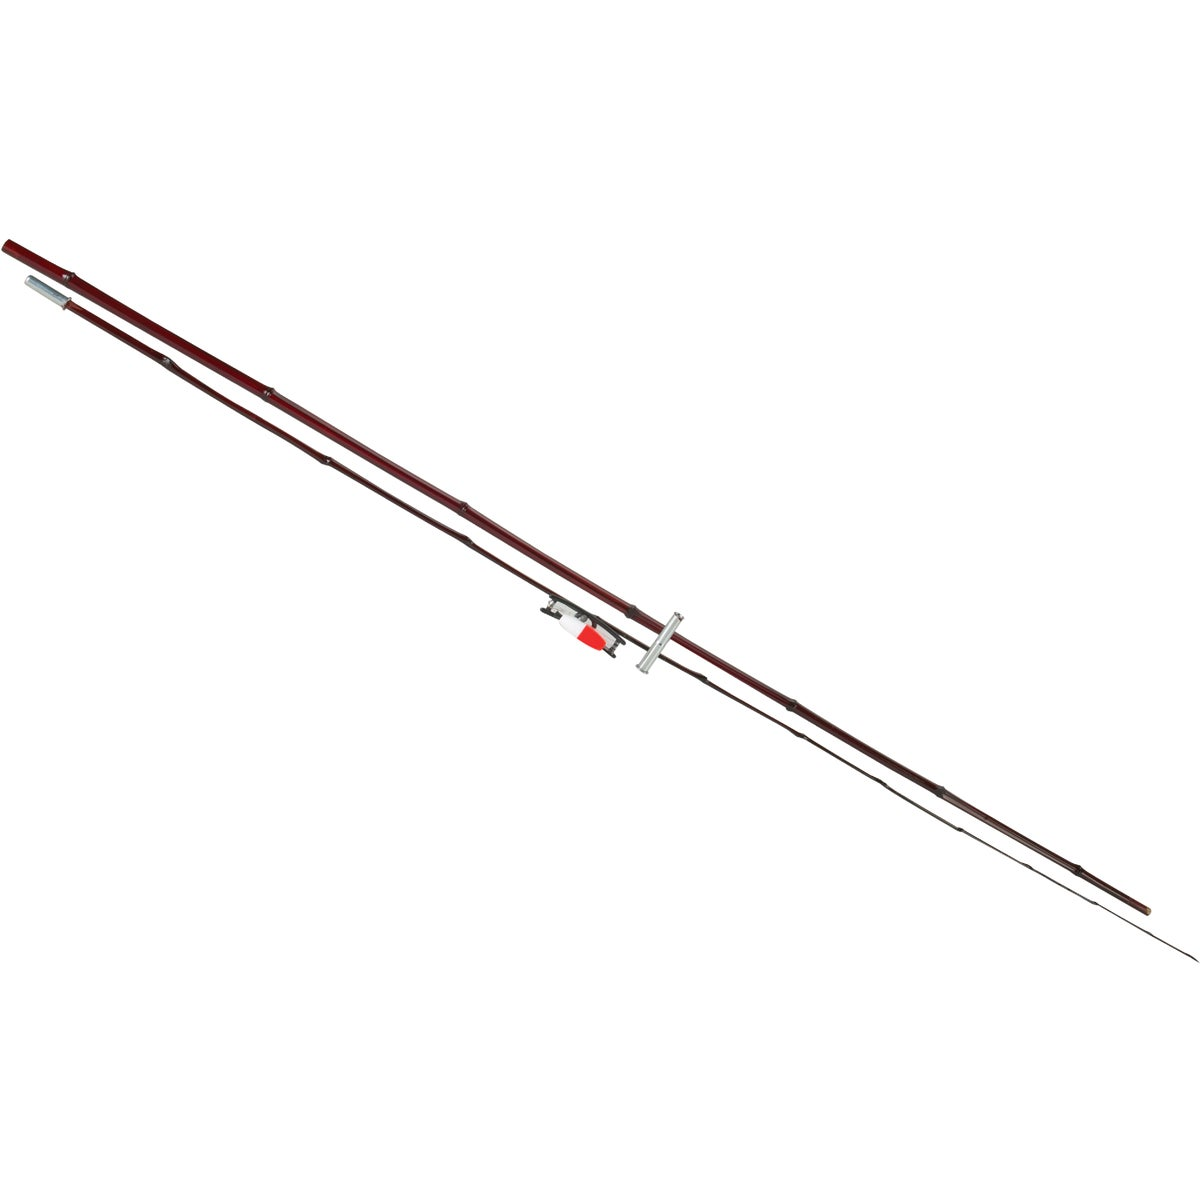 10'JOINTD BAMBOO ROD KIT - BK10 by South Bend Sptg Good